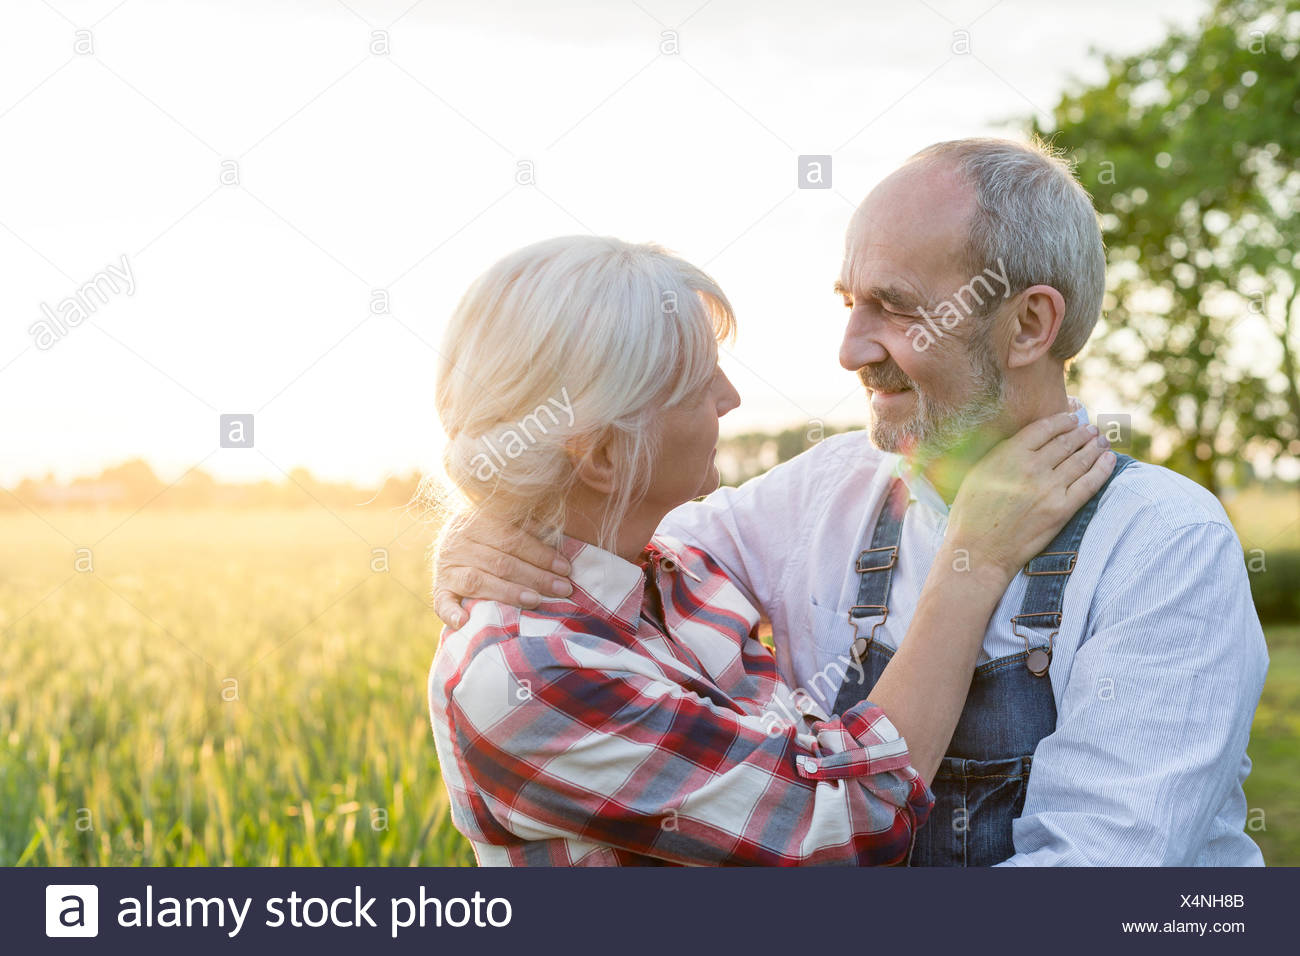 Affectionate senior couple hugging in sunny rural wheat field - Stock Image